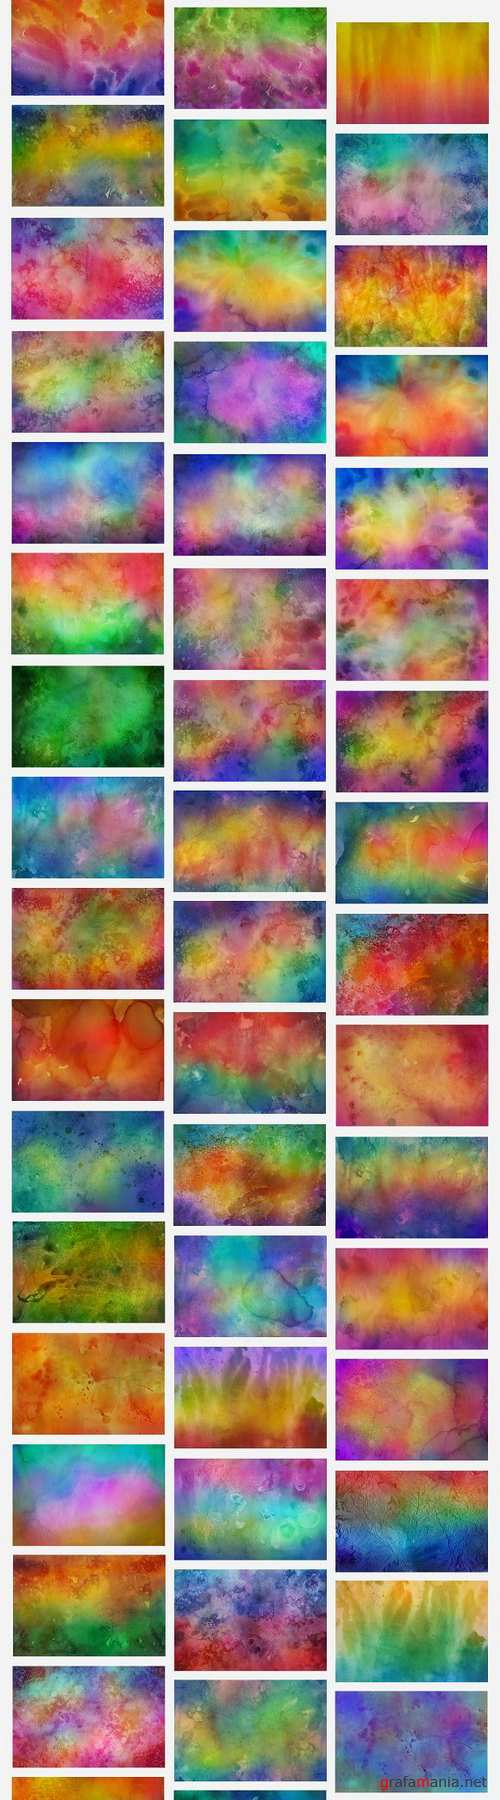 50 Colorful Watercolor Backgrounds